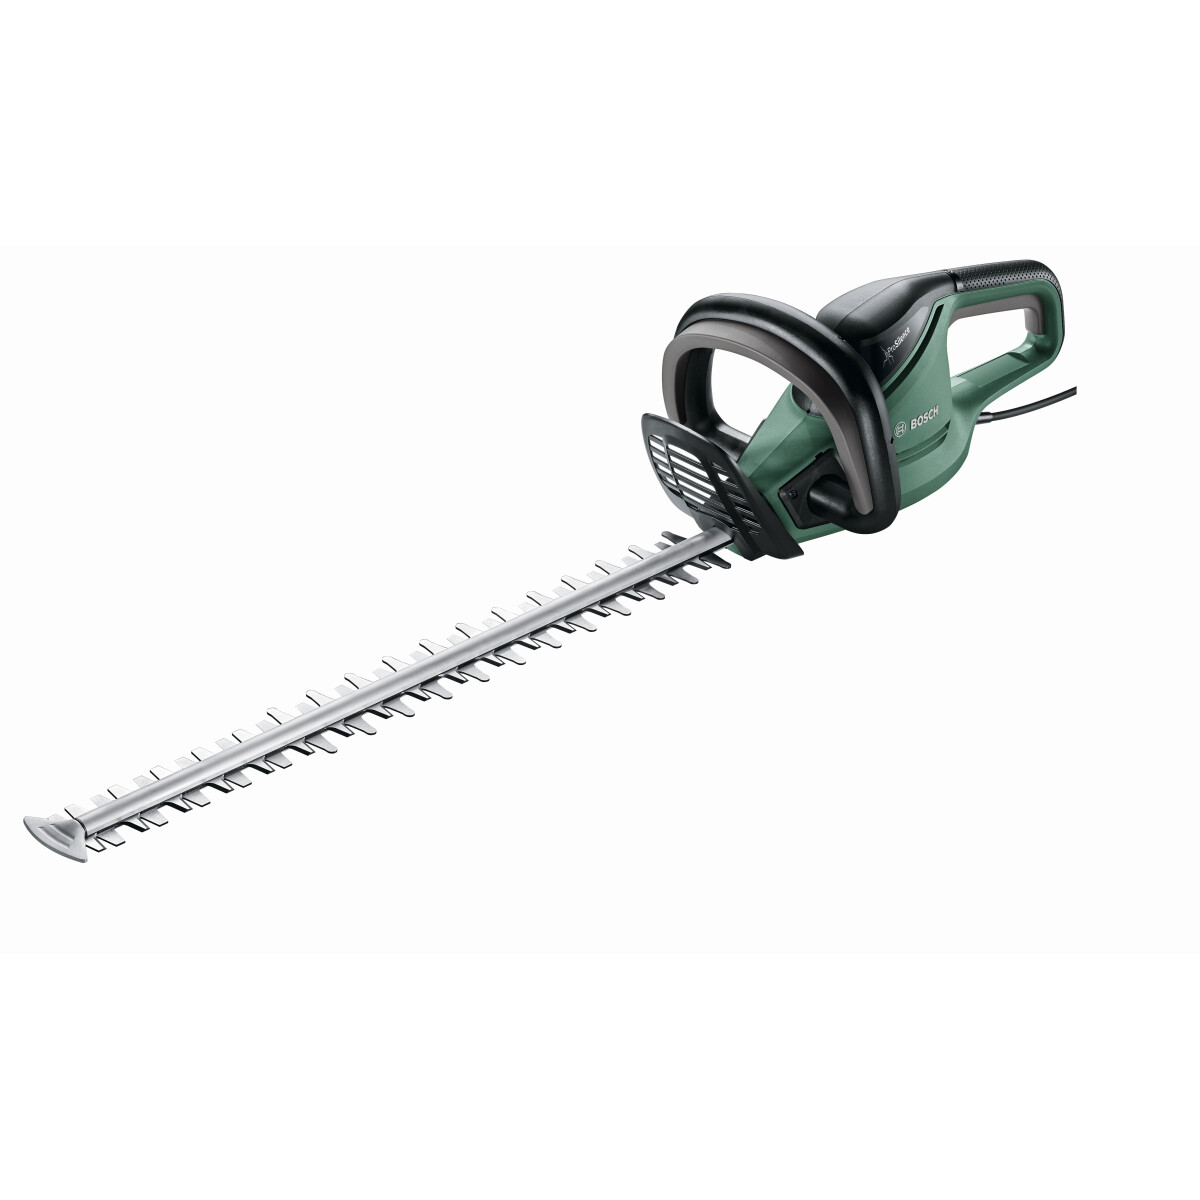 Bosch UniversalHedgeCut 60 60cm 480W Hedge Cutter with Powerful Sawing Function